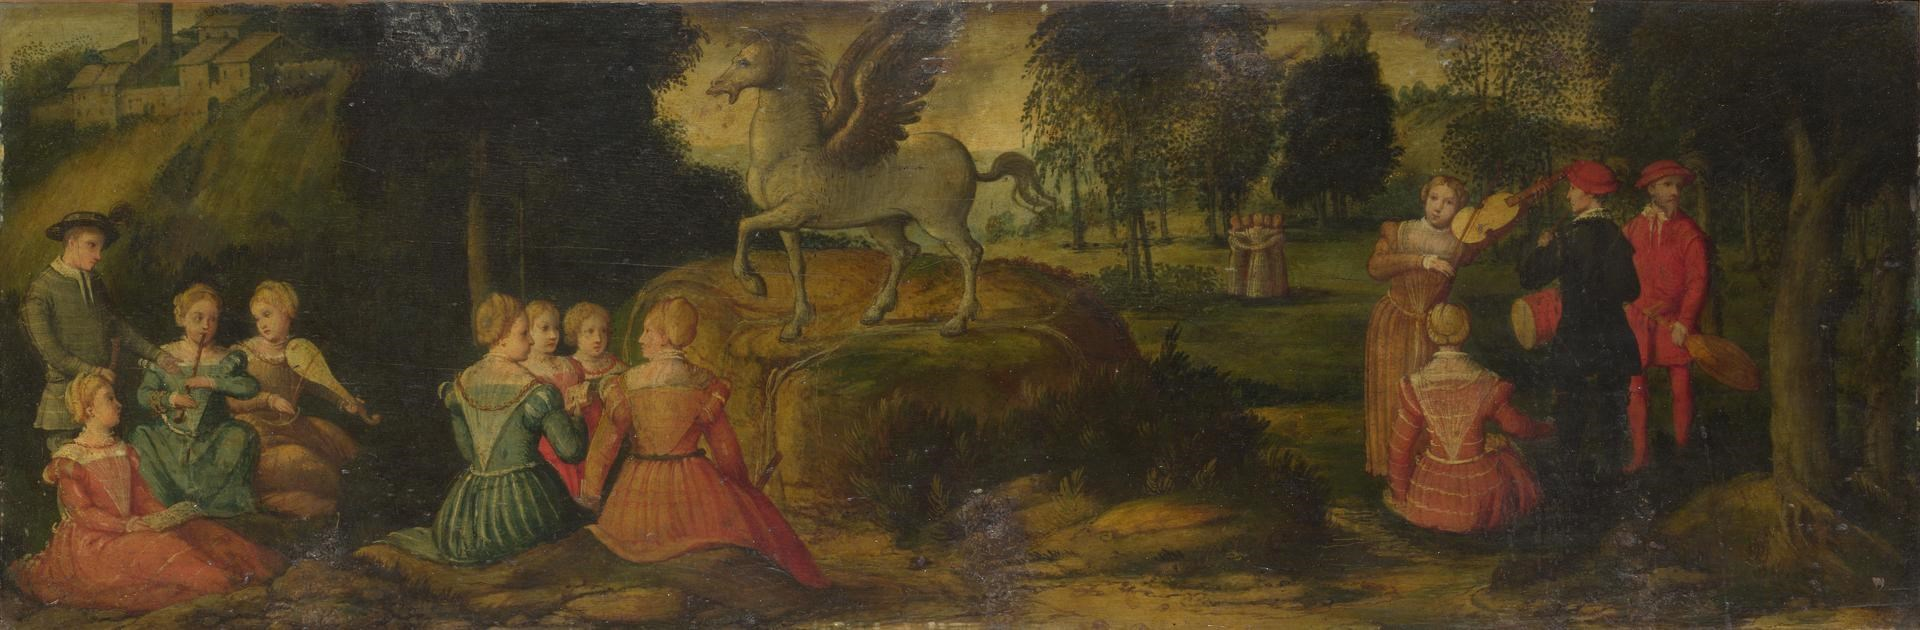 Pegasus and the Muses by Possibly by Girolamo Romanino